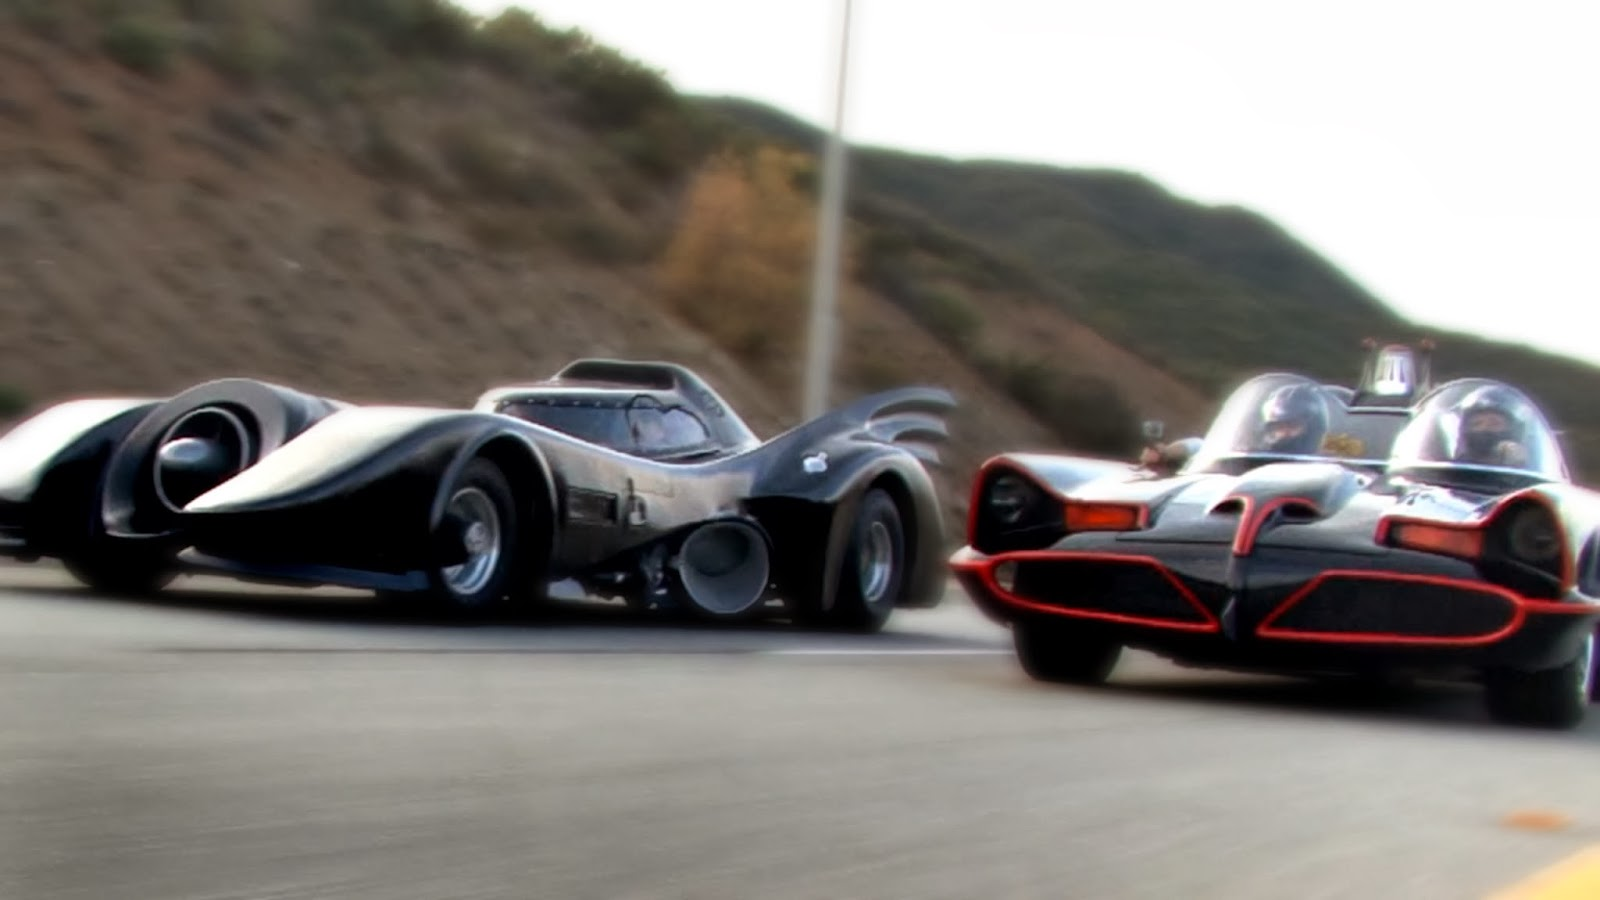 Video 1966 Batmobile VS 1989 Batmobile in Street Race SuperCars 1600x900